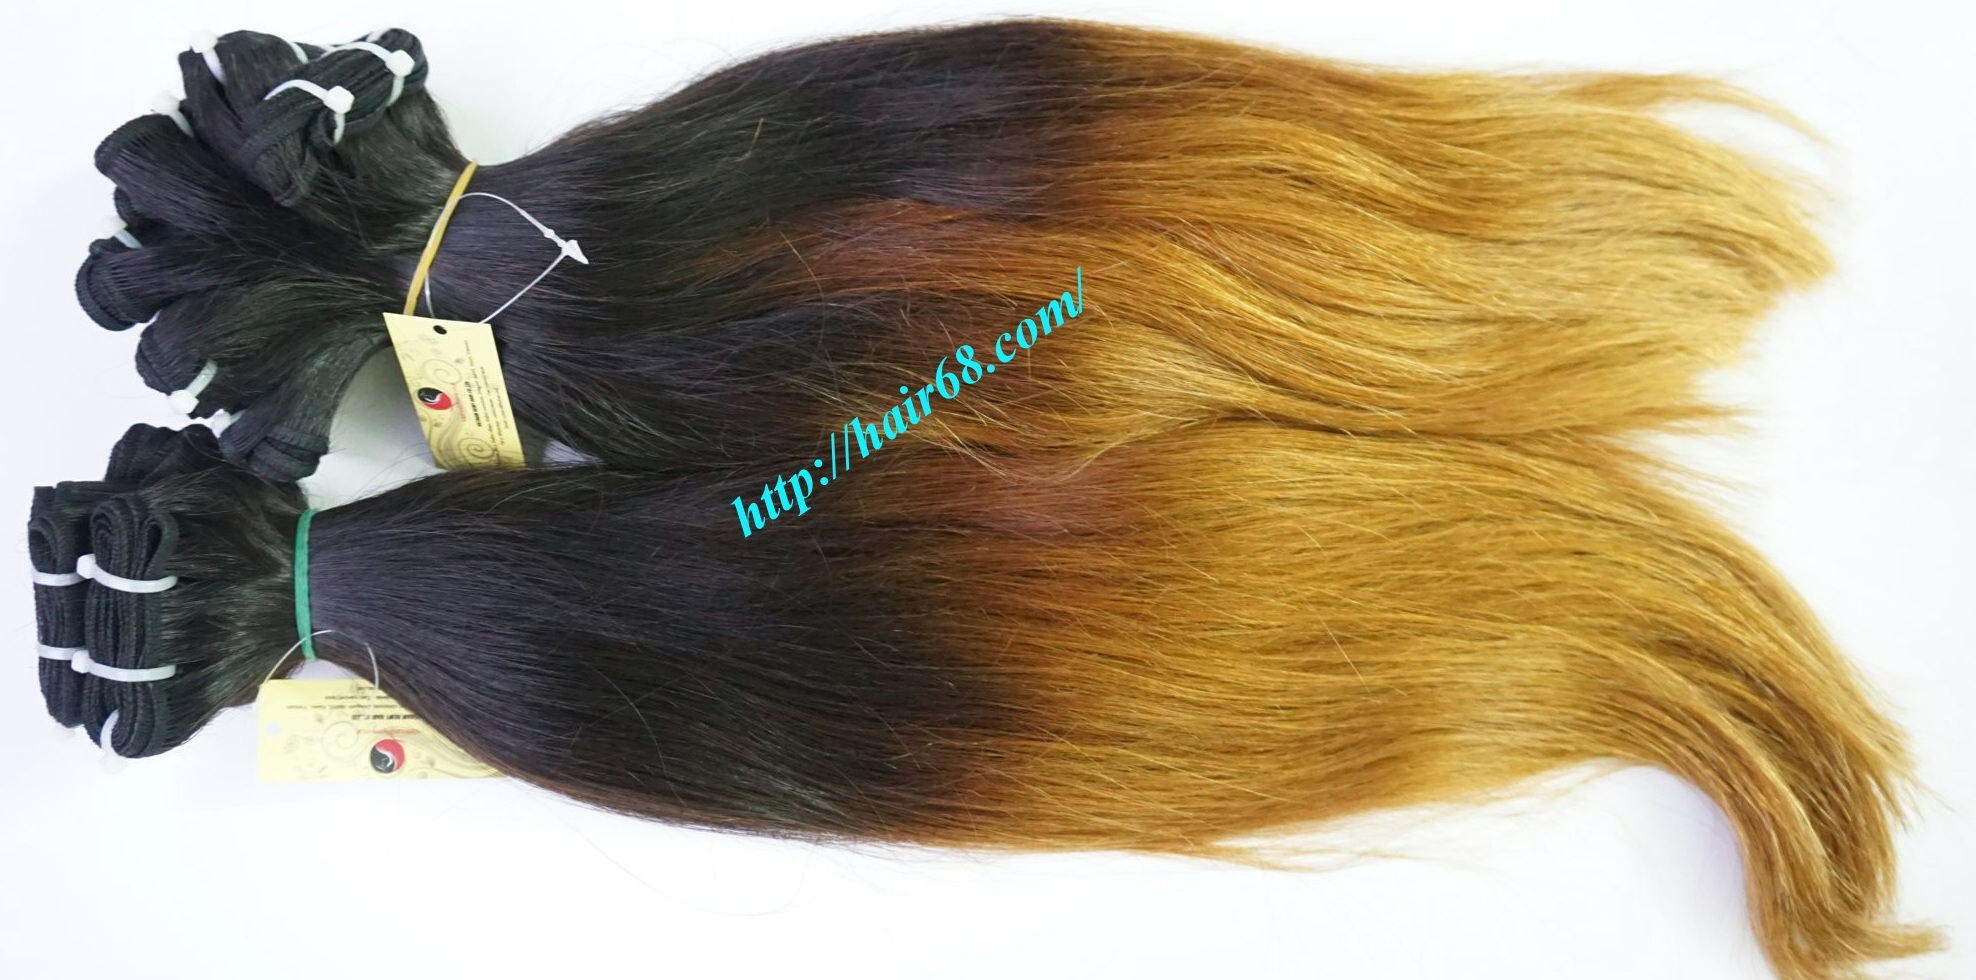 18 inch ombre hair extensions vietnam hair 8